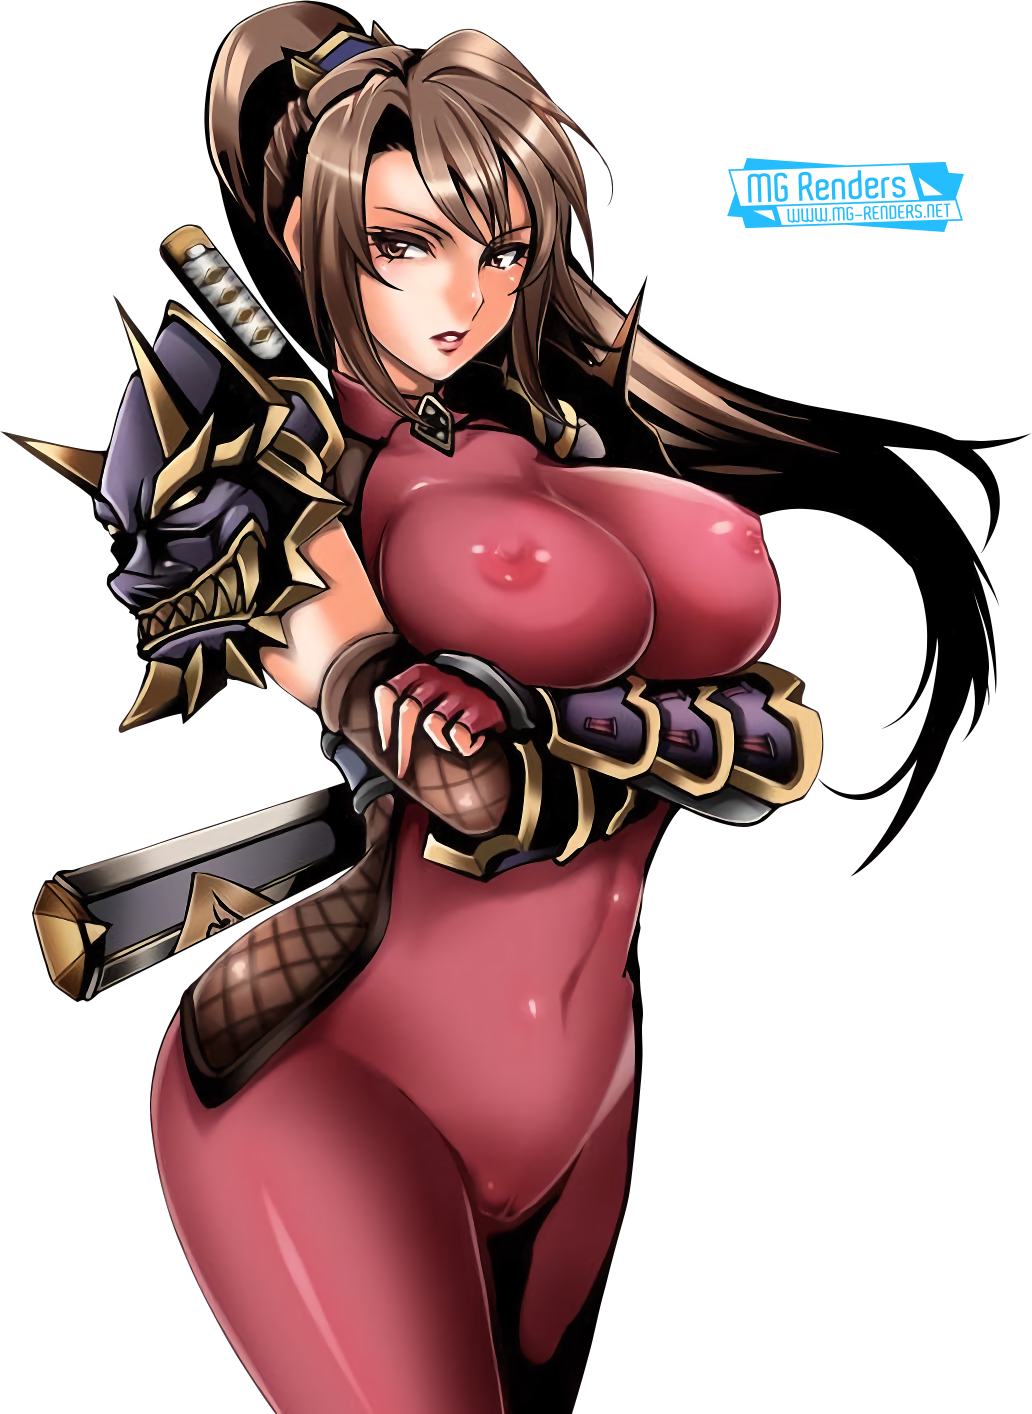 Tags: Anime, Render,  Bodysuit,  Breasts press,  Gloves,  Huge Breasts,  Soulcalibur,  Taki, PNG, Image, Picture